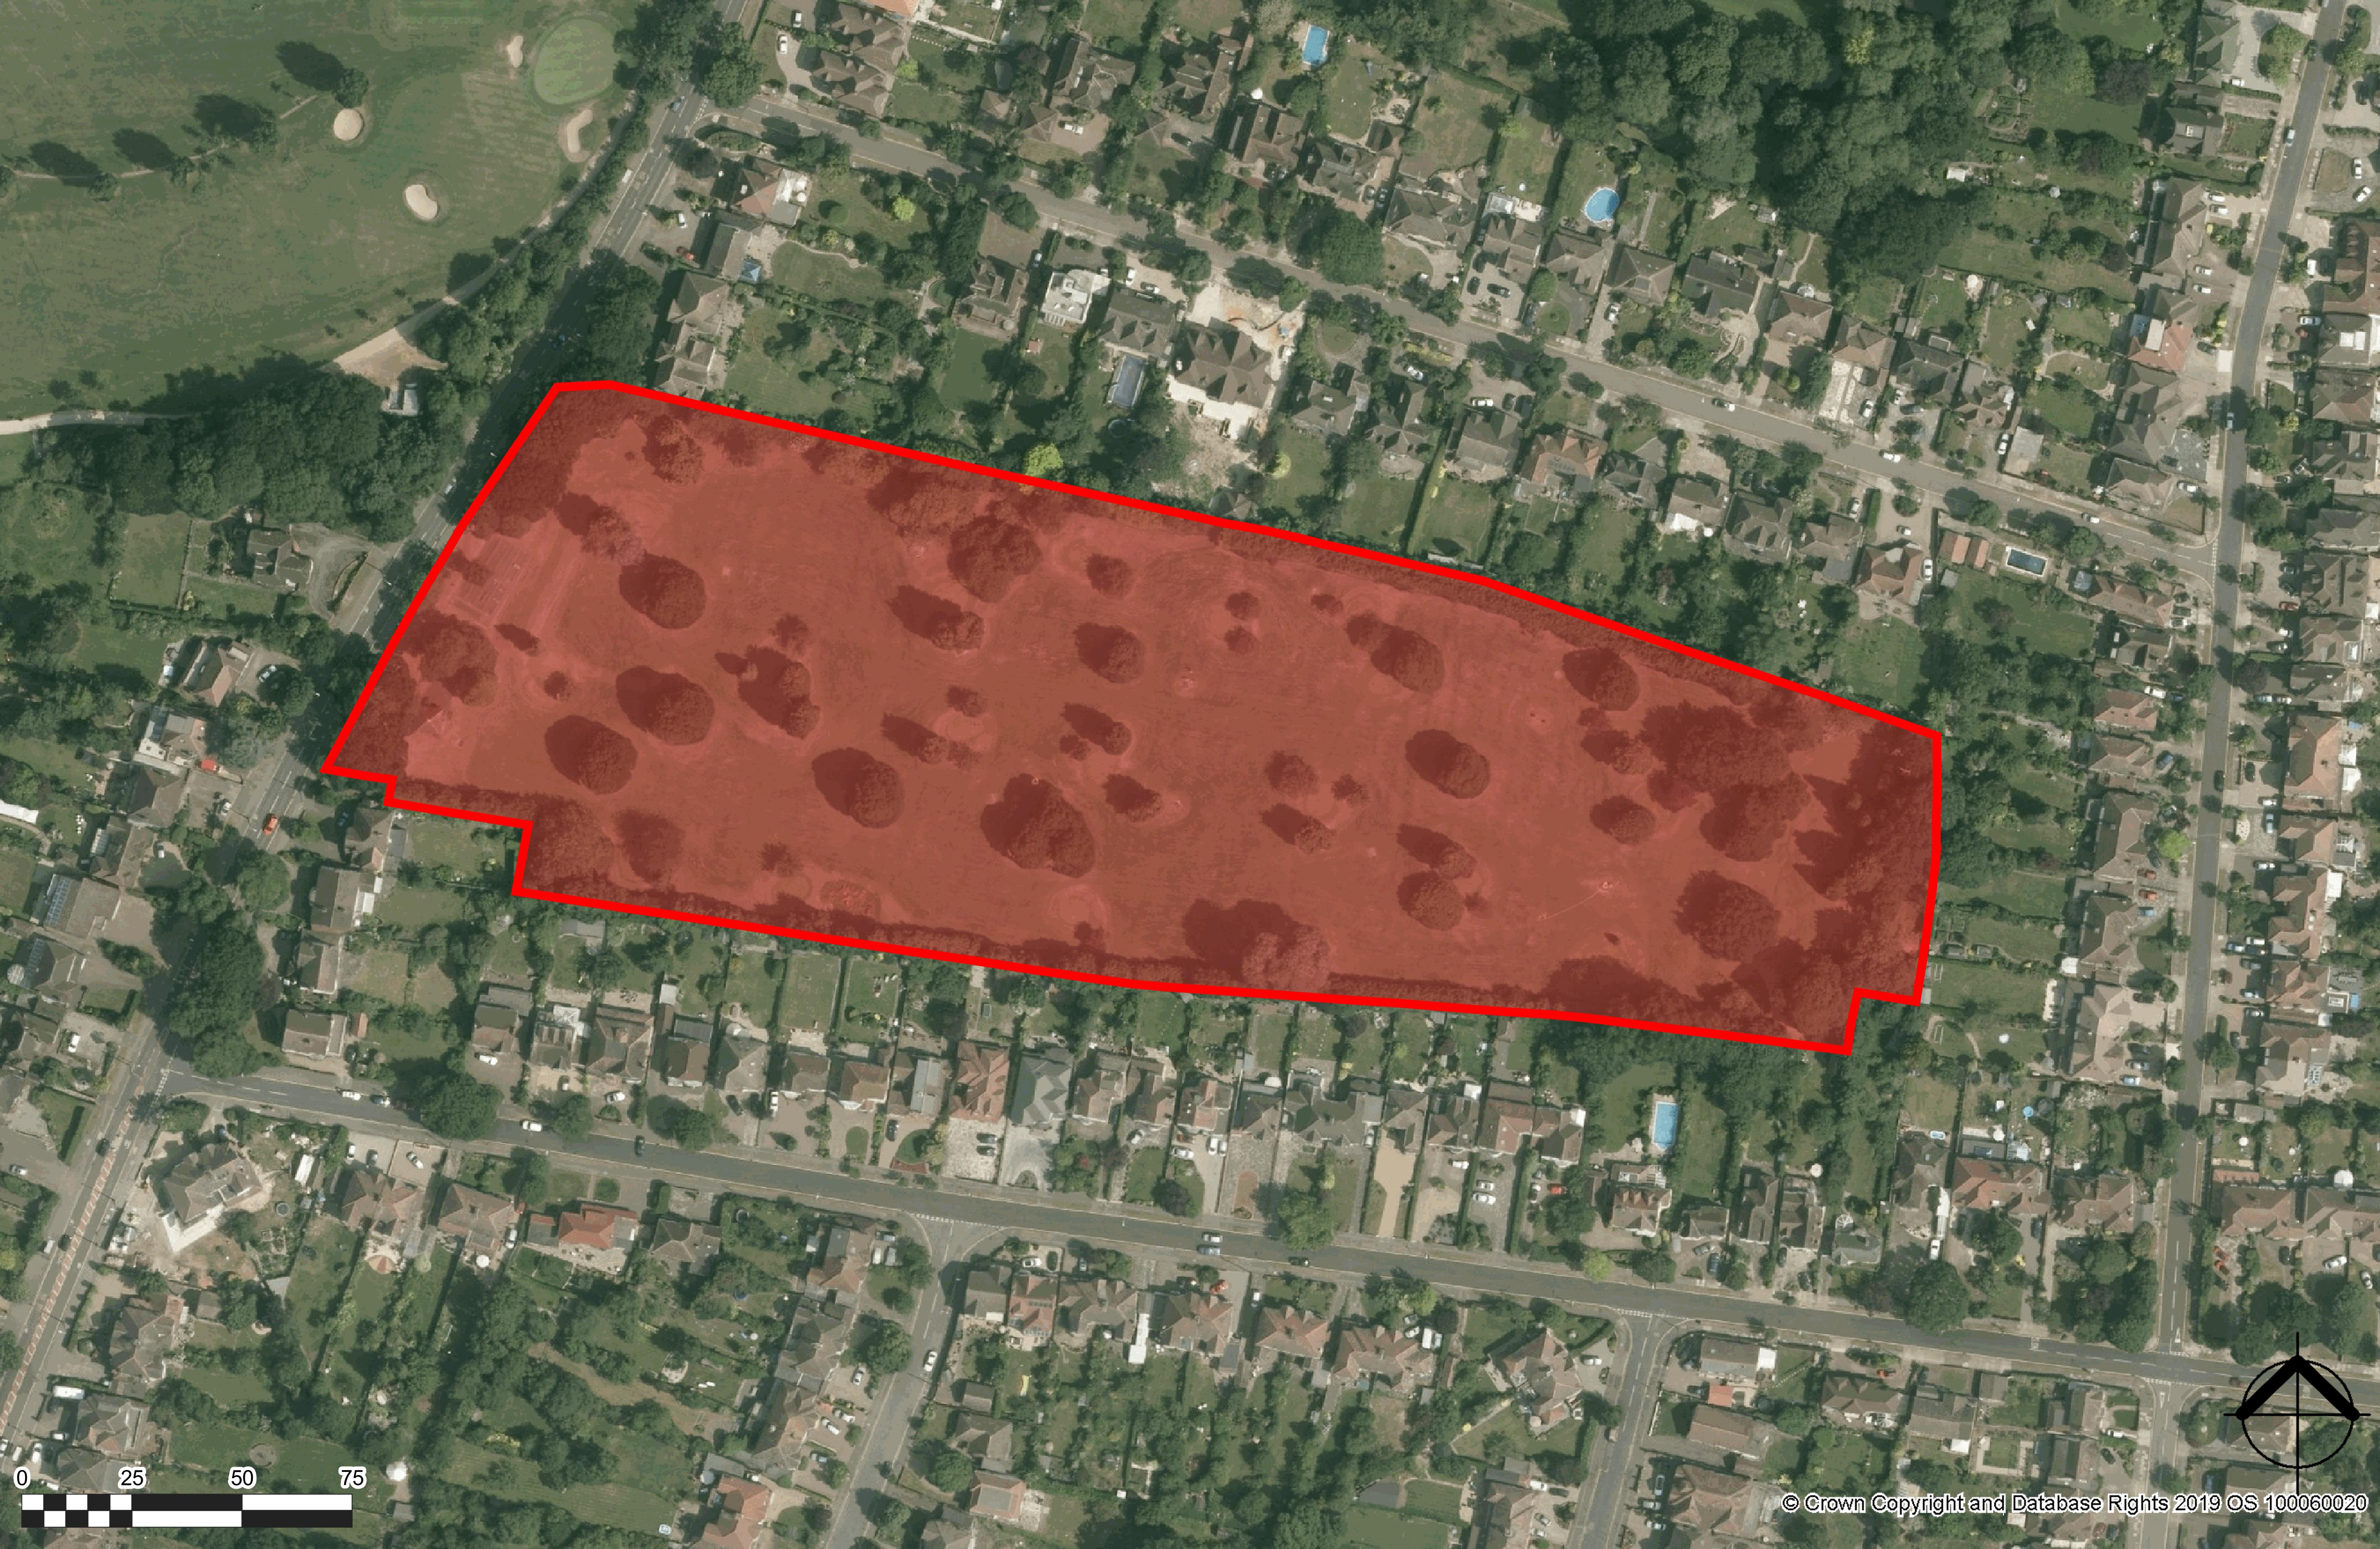 Glenny instructed on two residential development opportunities in Essex